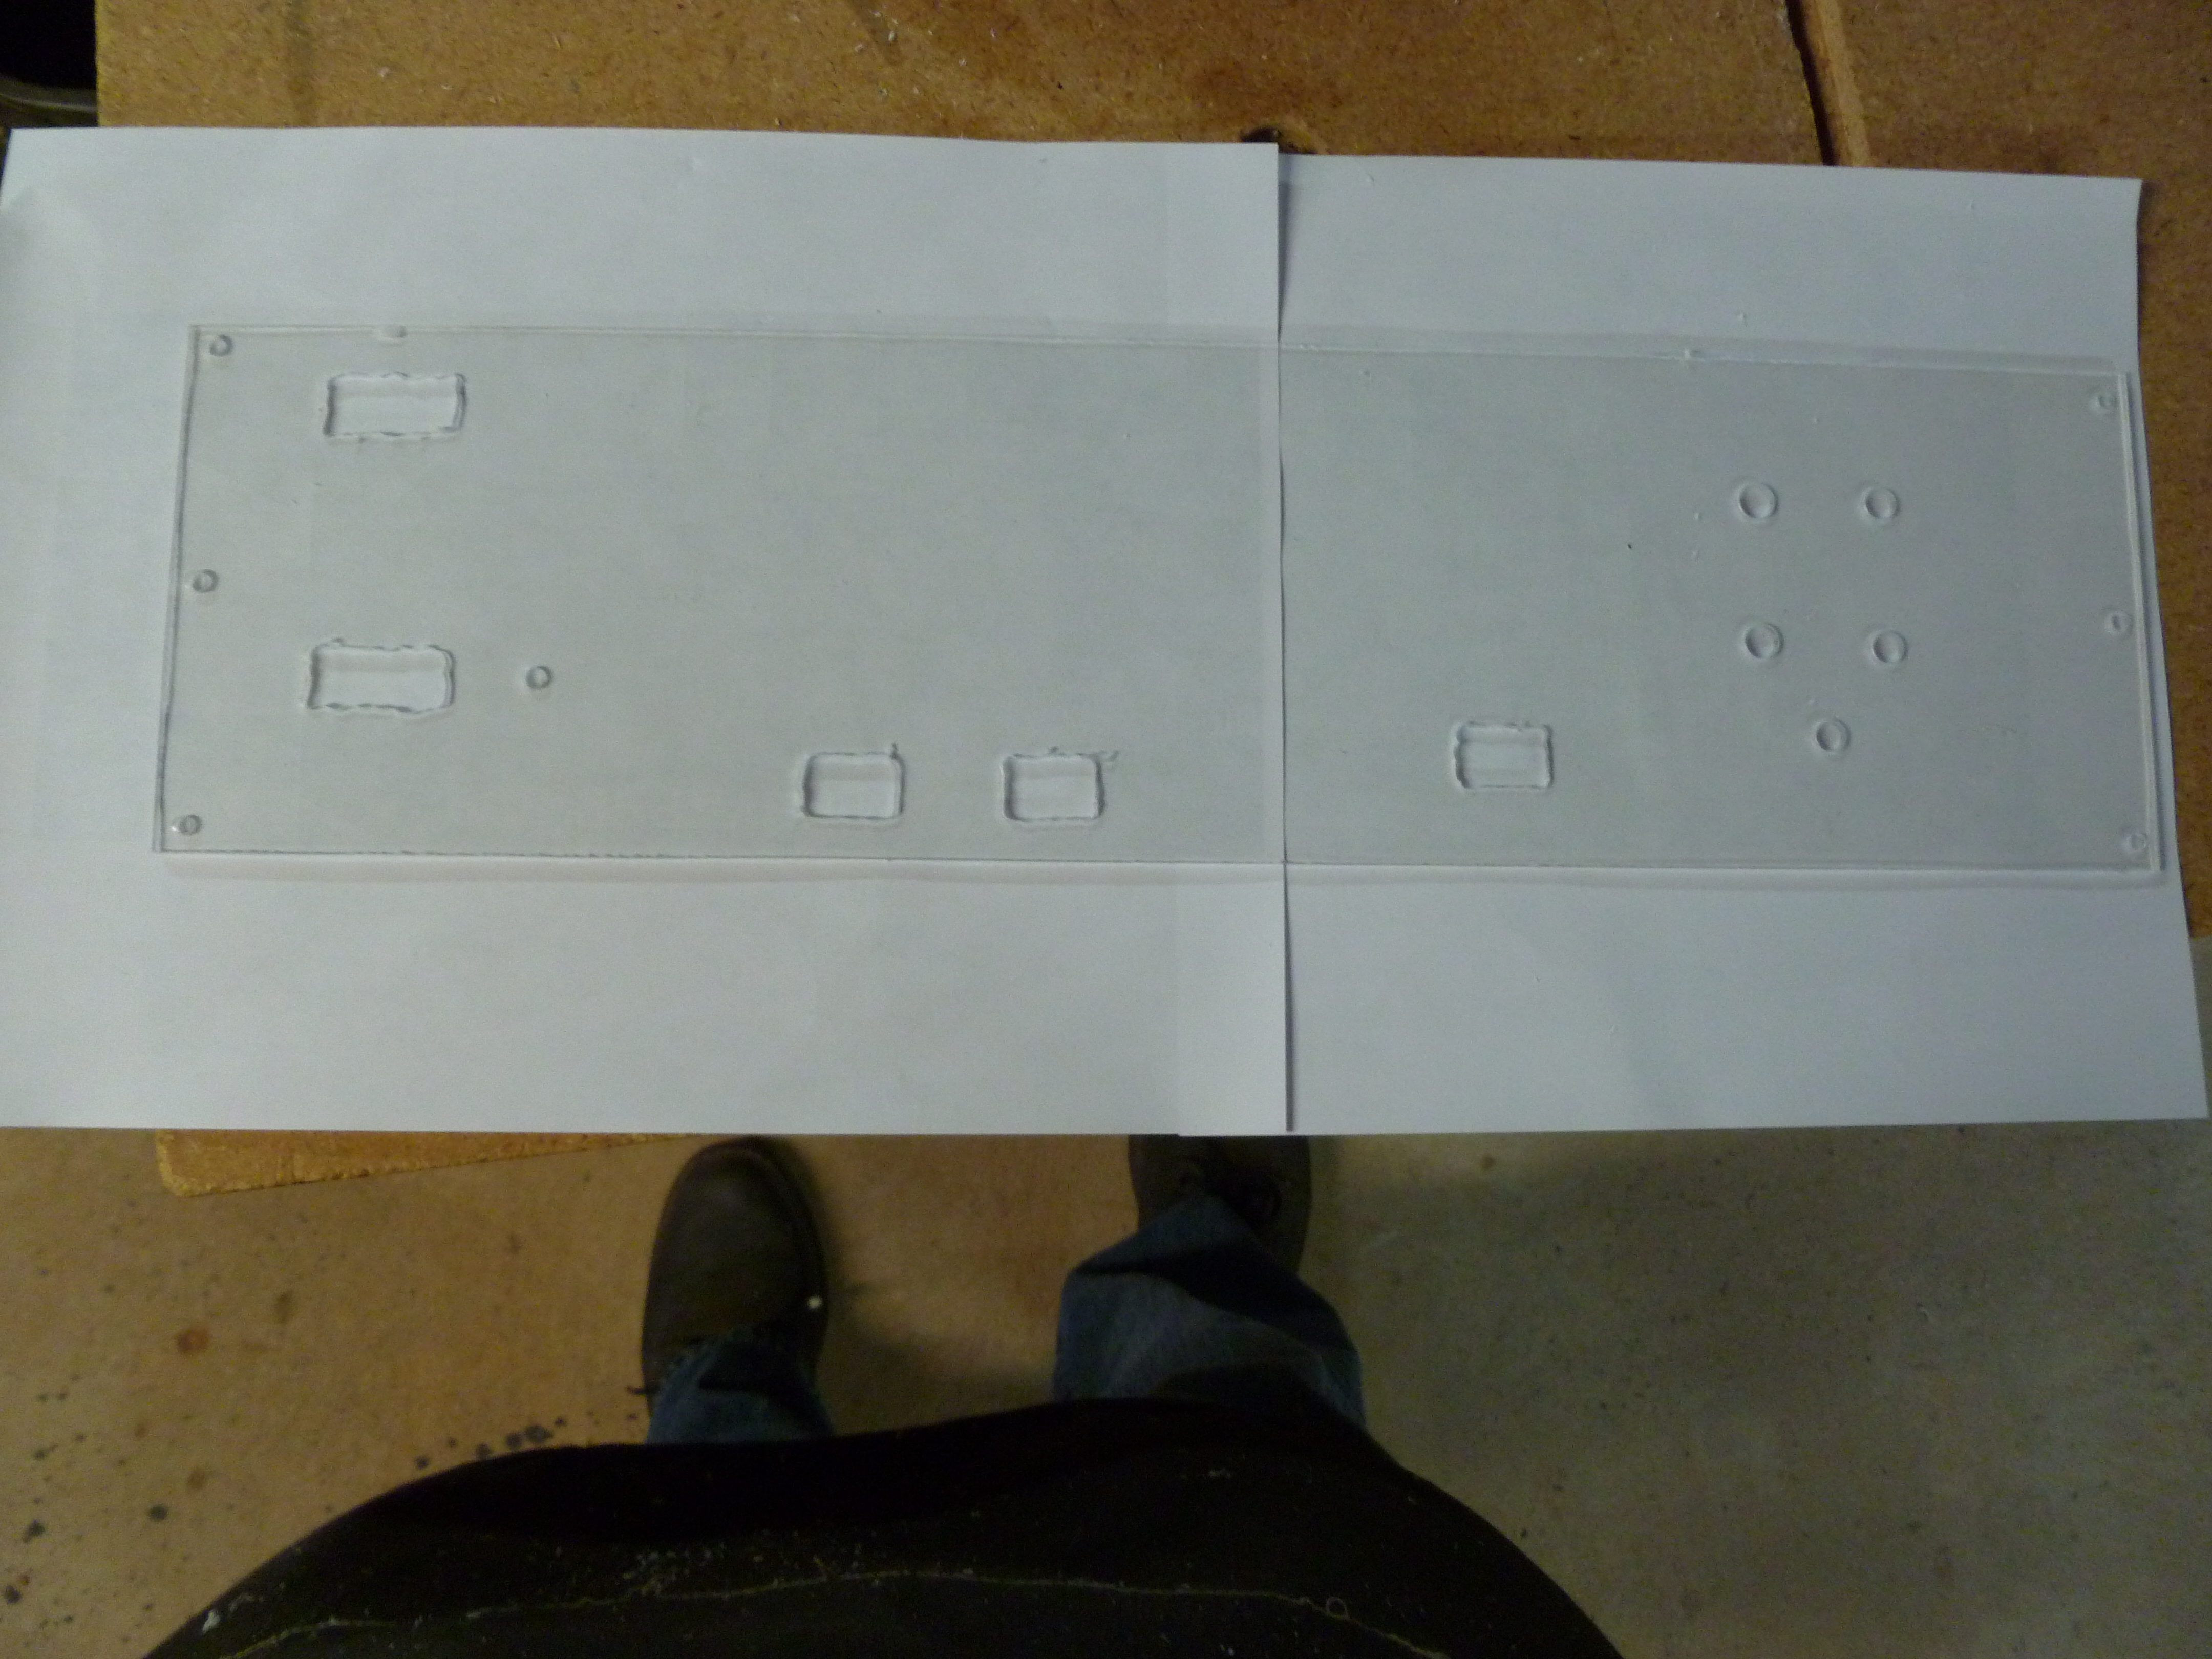 Picture of Control Panel